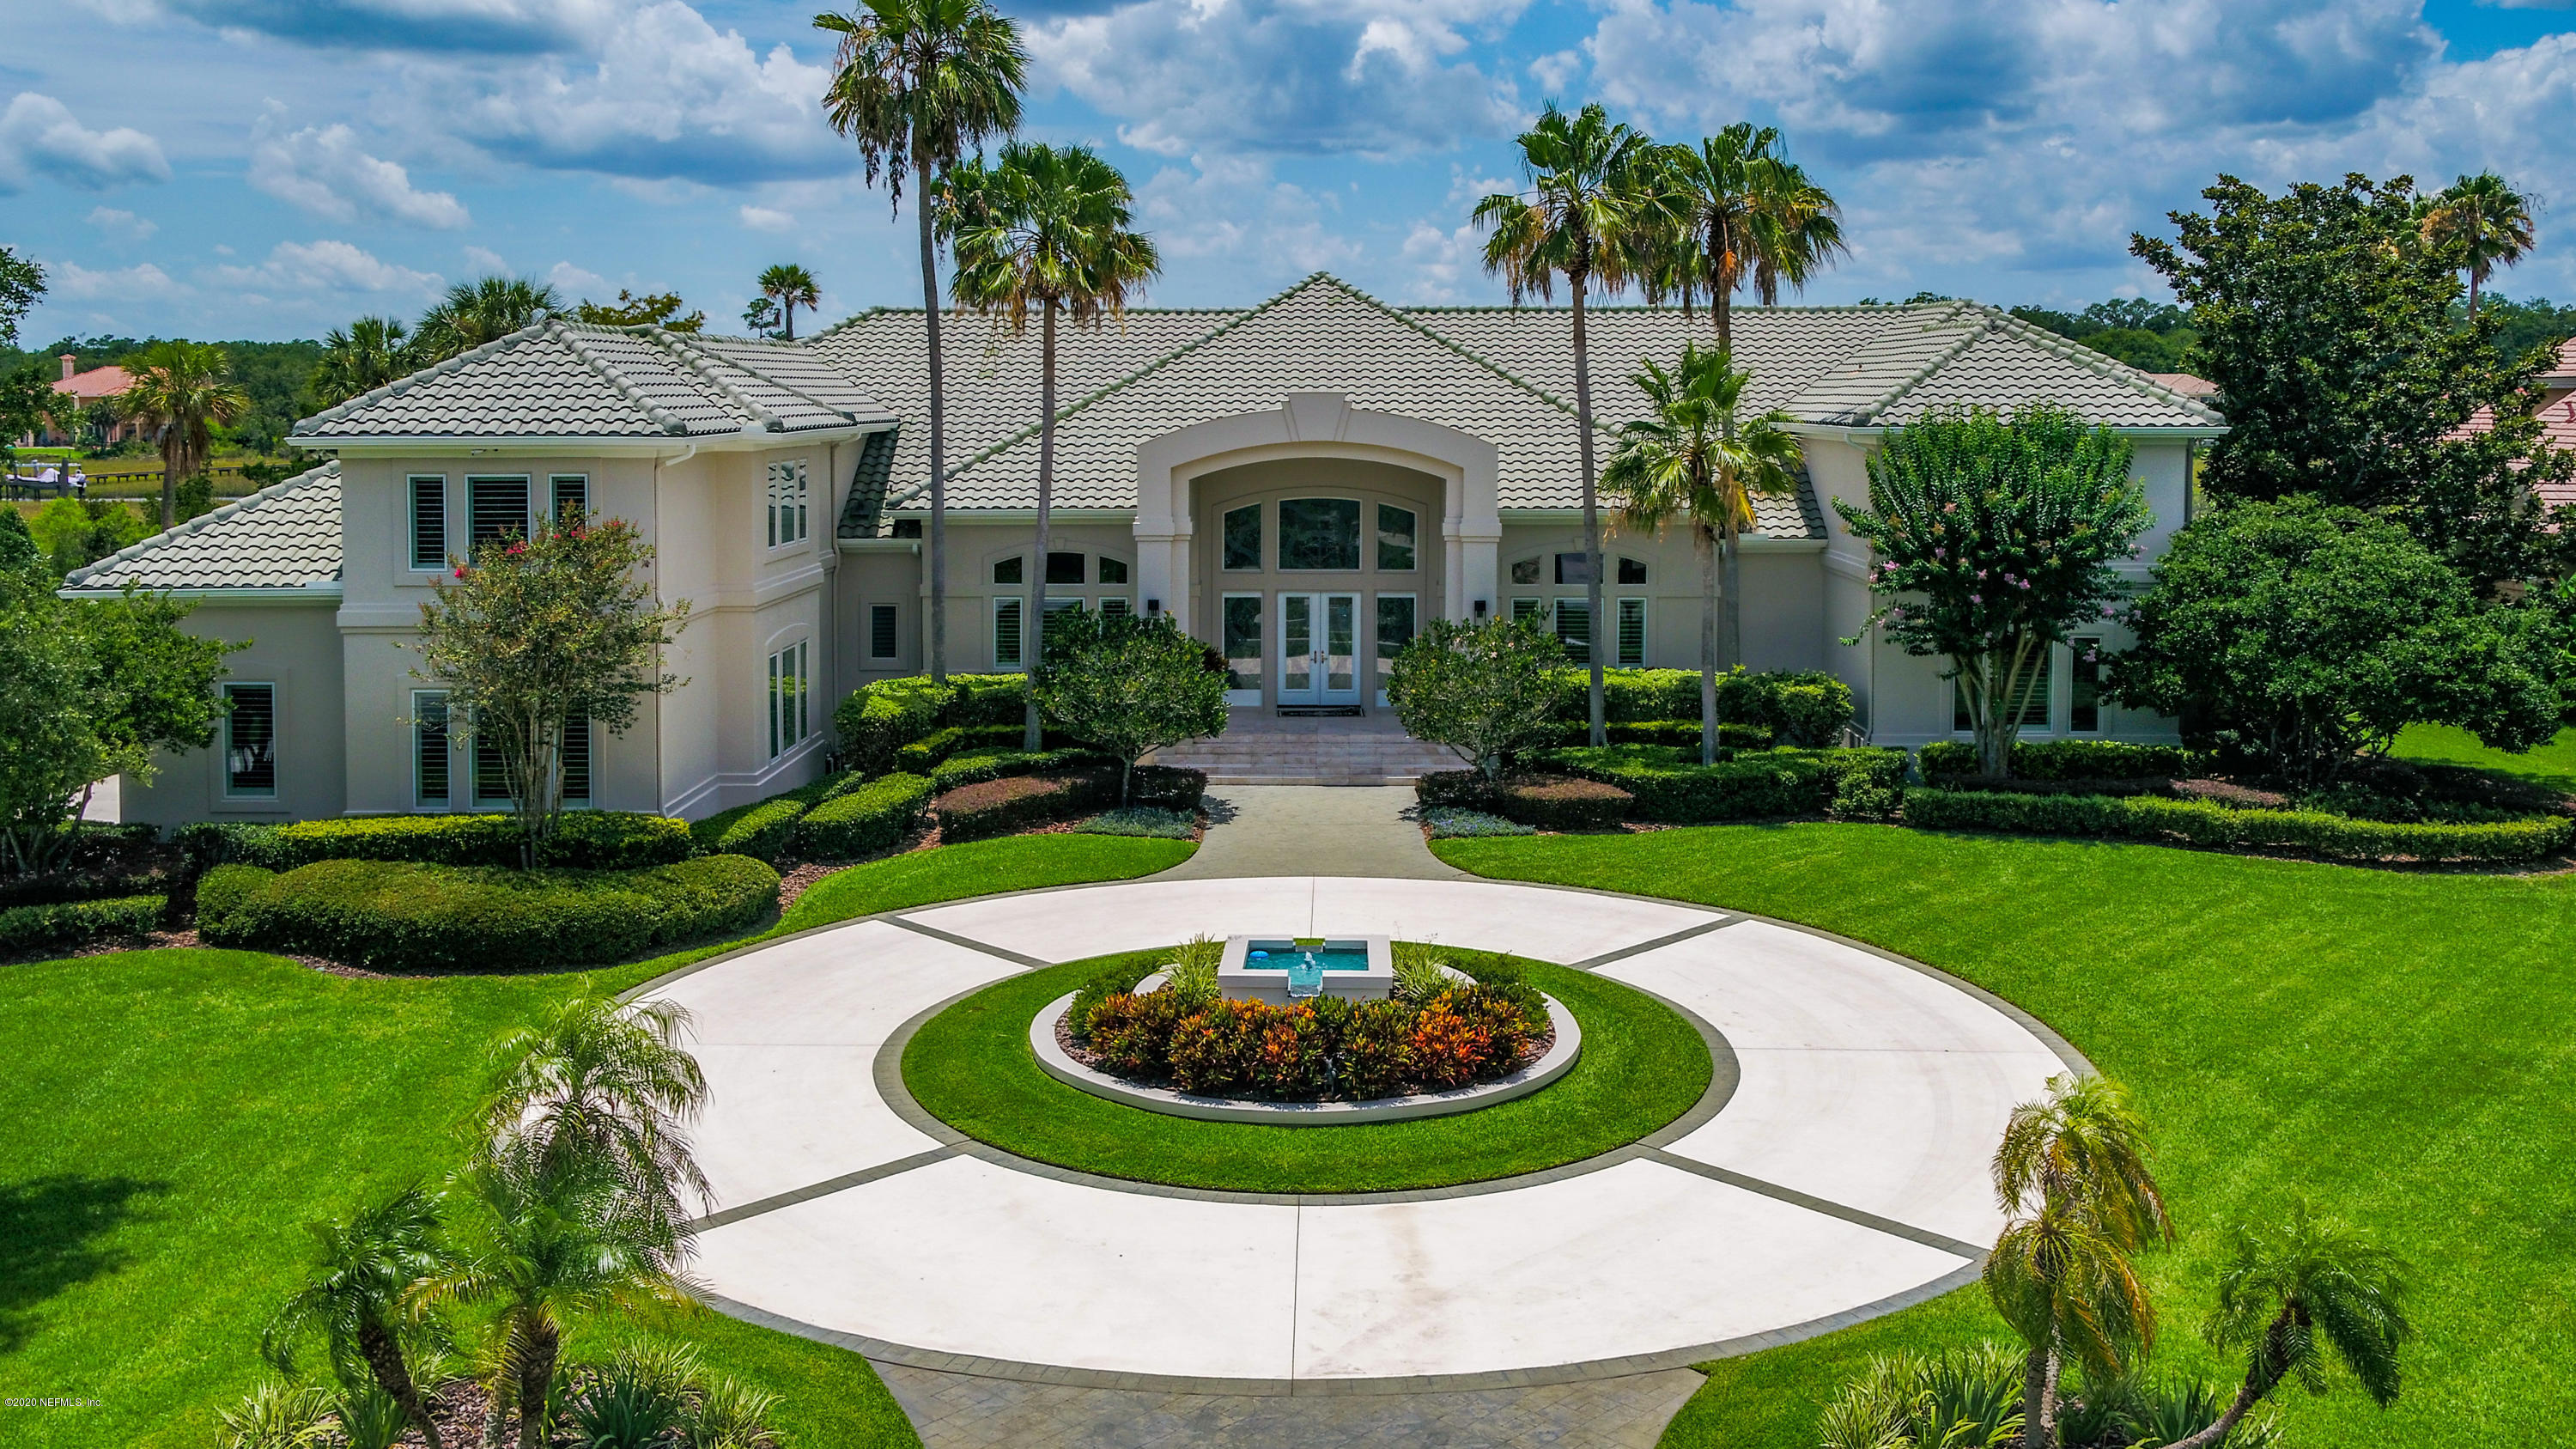 205 DEER HAVEN, PONTE VEDRA BEACH, FLORIDA 32082, 5 Bedrooms Bedrooms, ,5 BathroomsBathrooms,Residential,For sale,DEER HAVEN,1059260